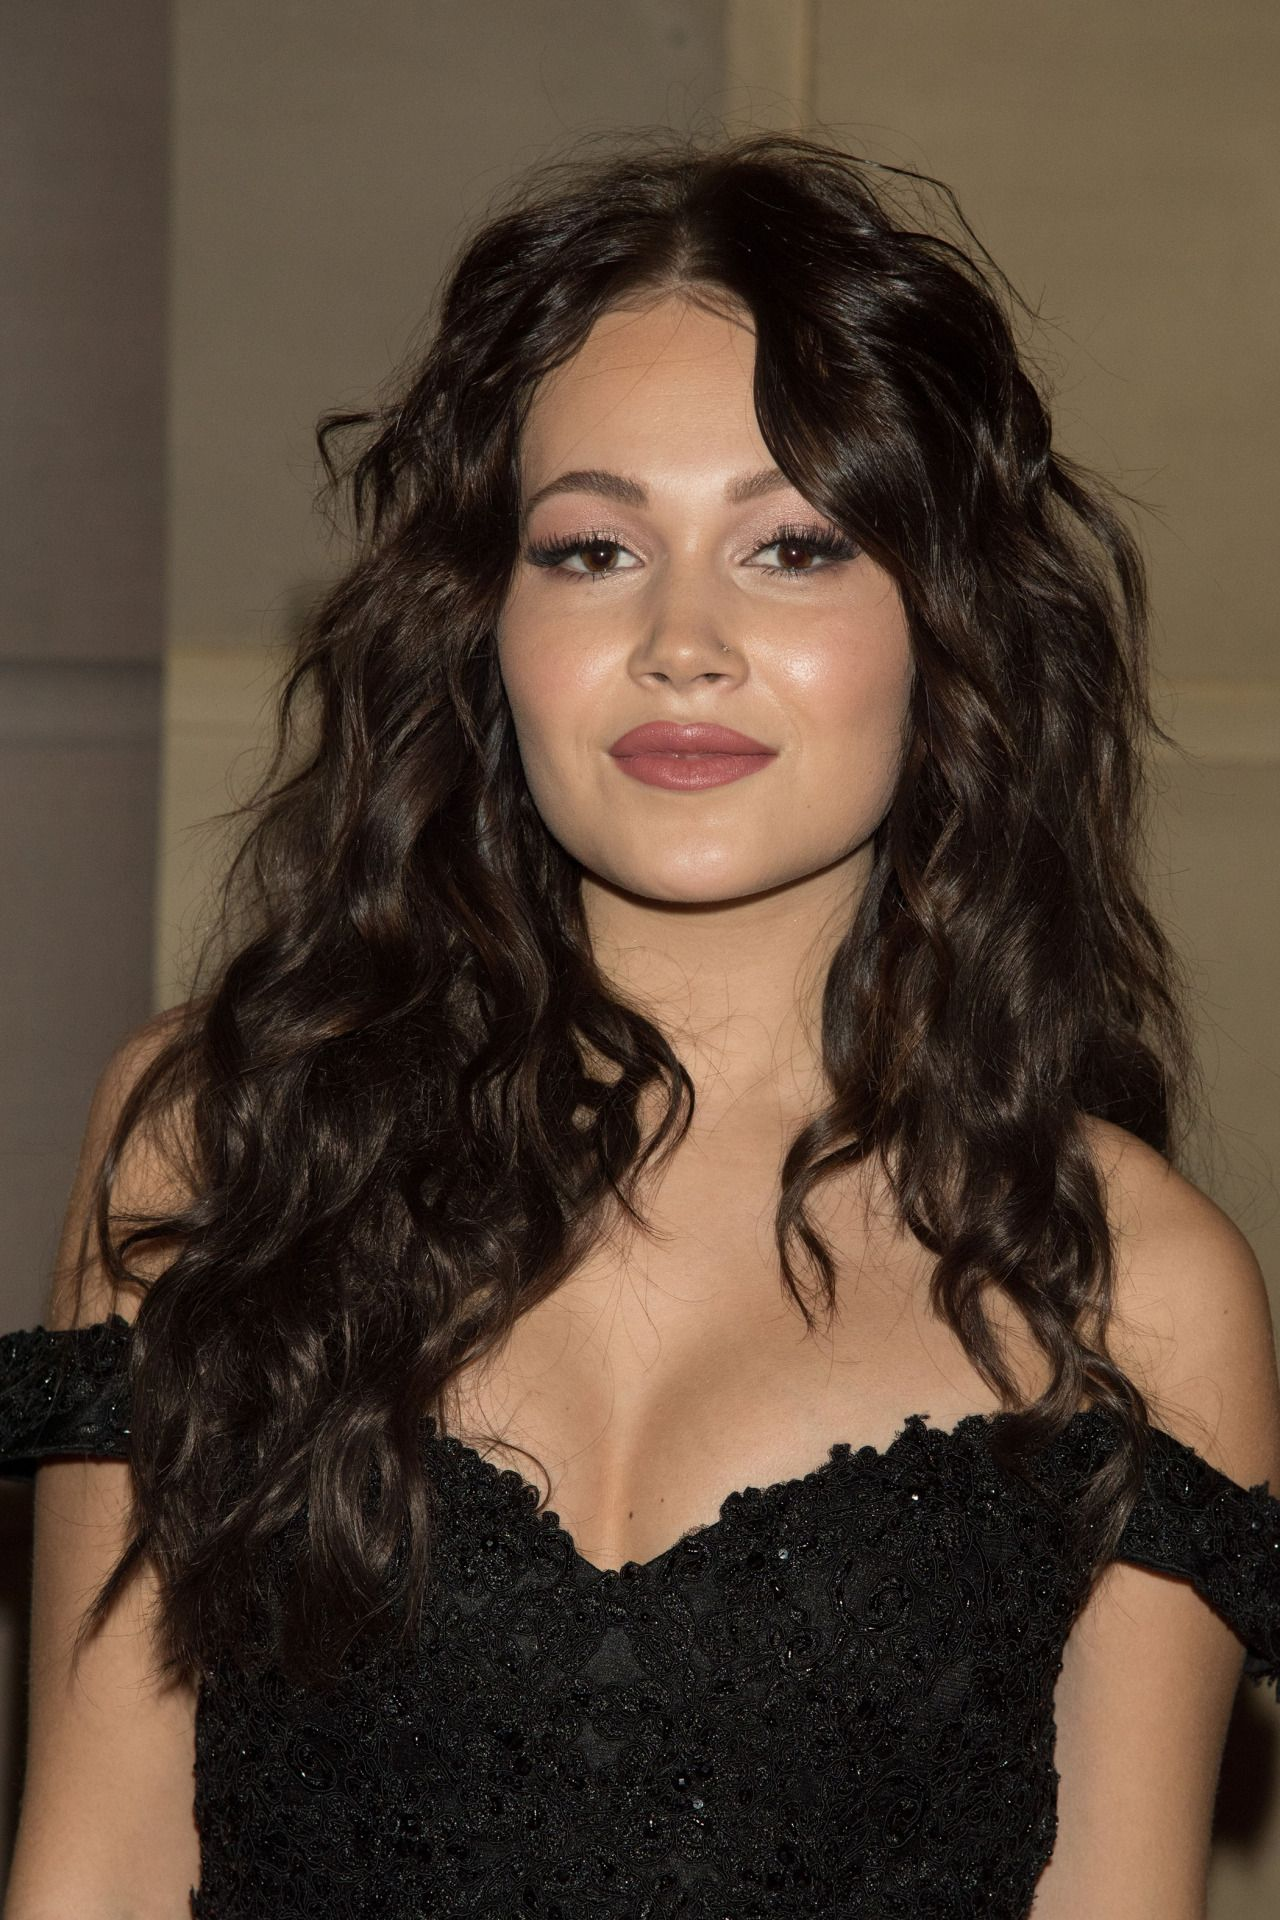 Kelli Berglund bathing suit